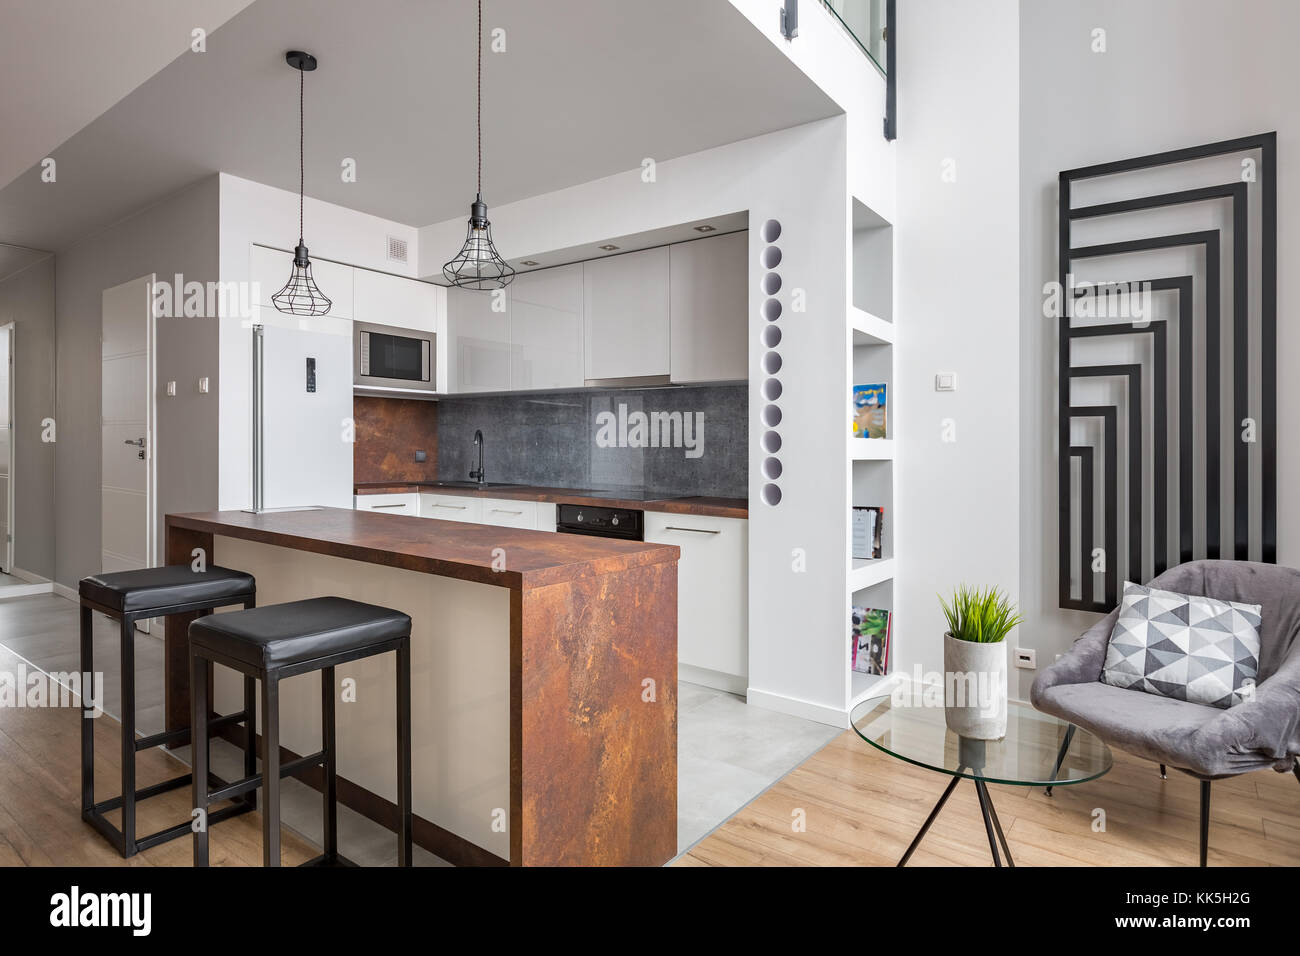 Apartment With Functional Open Kitchen And Modern Wall Radiator Stock Photo Alamy